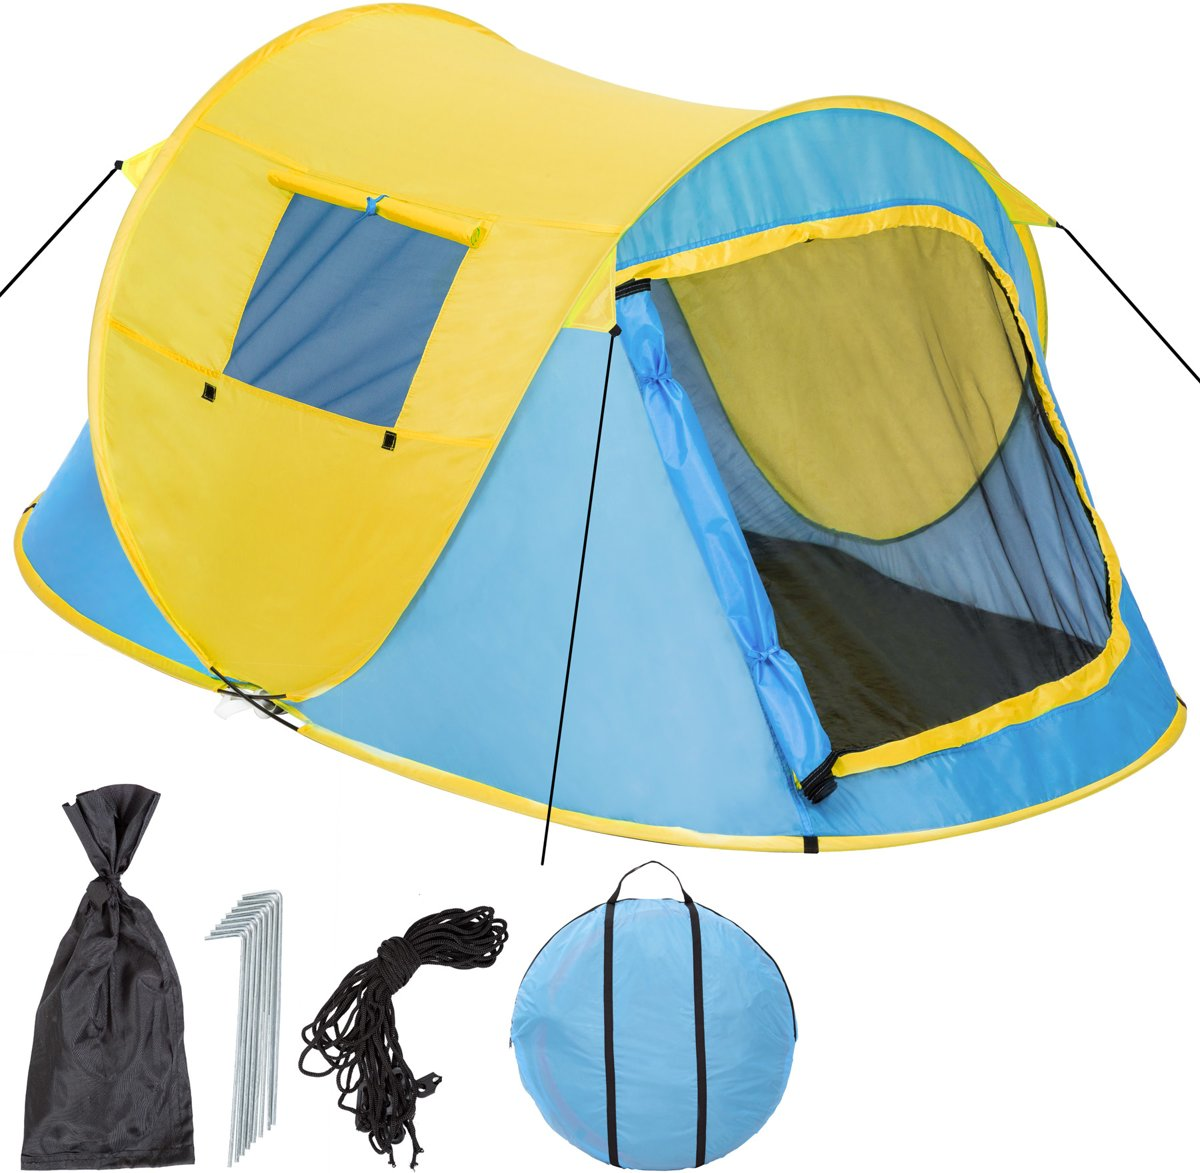 1 Persoons Pop Up Tent Bol 2 Persoons Pop Up Tent Kopen Alle Pop Up Tenten Online